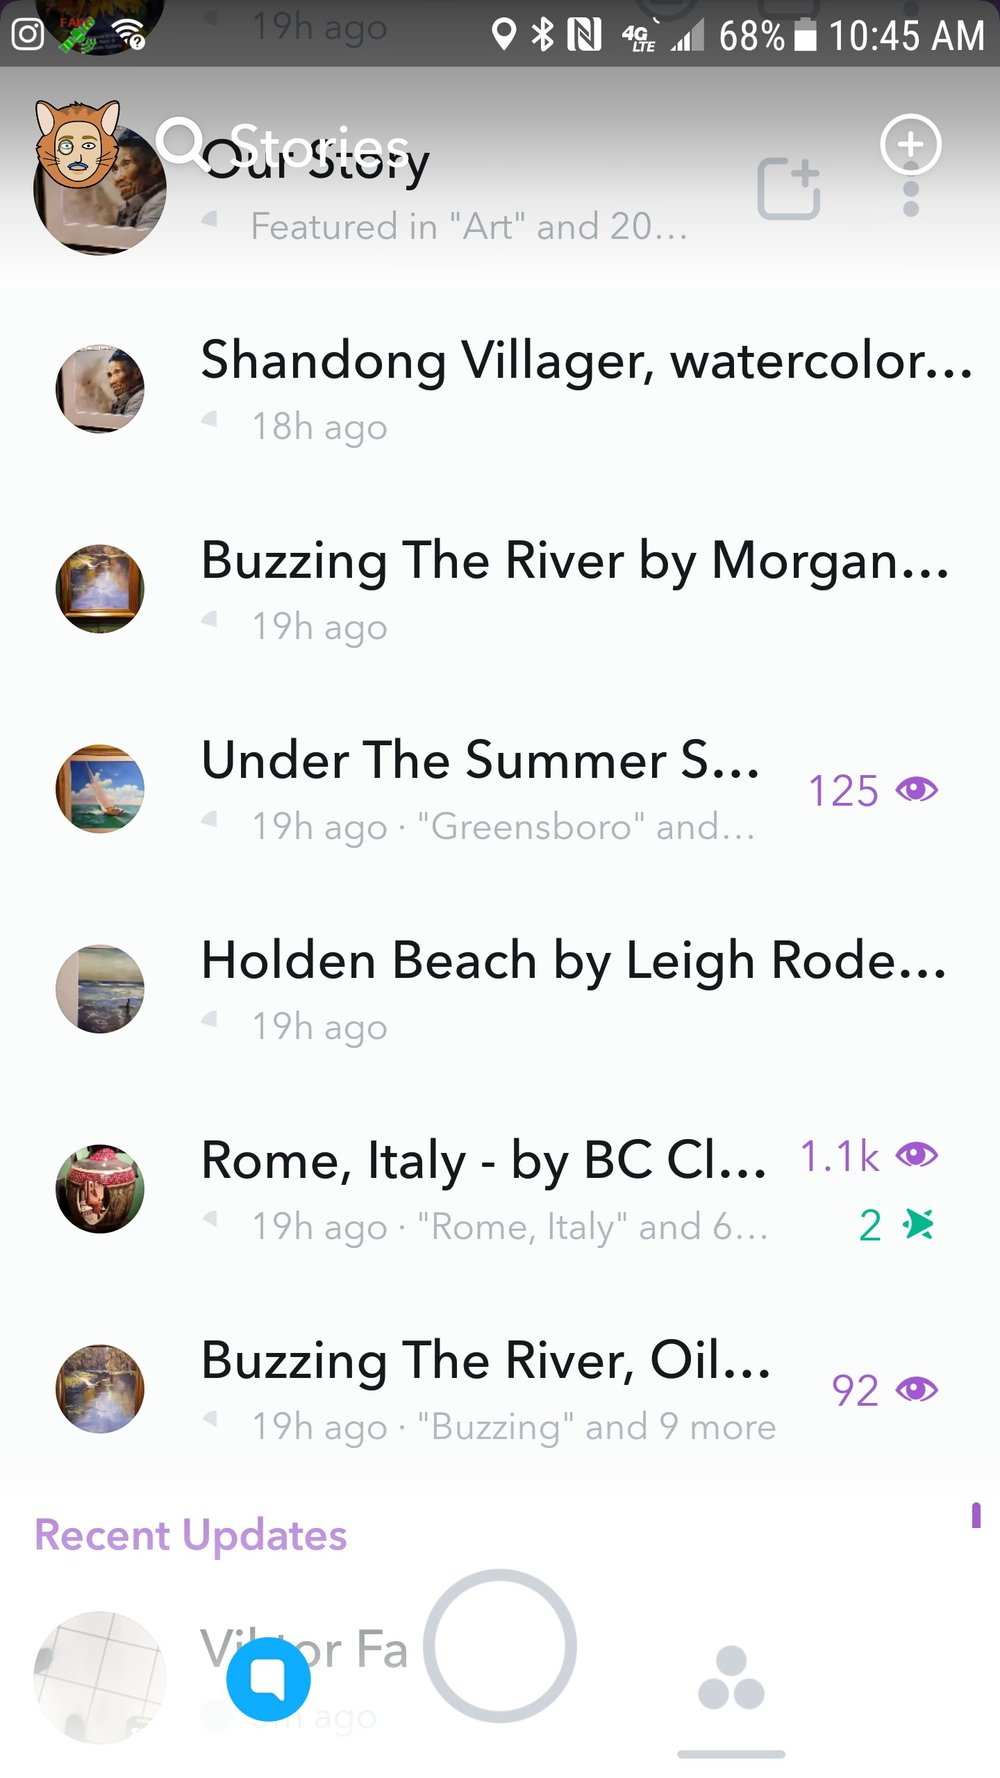 A screengrab of my Snapchat Story results from using the Snap Map - 1300+ views, 2 screenshots. I forgot to screenshot my results within 24 hours of my first few uploads so some of my results disappeared before I could save them. I had roughly 700 additional views on another sculpture as well during this study.